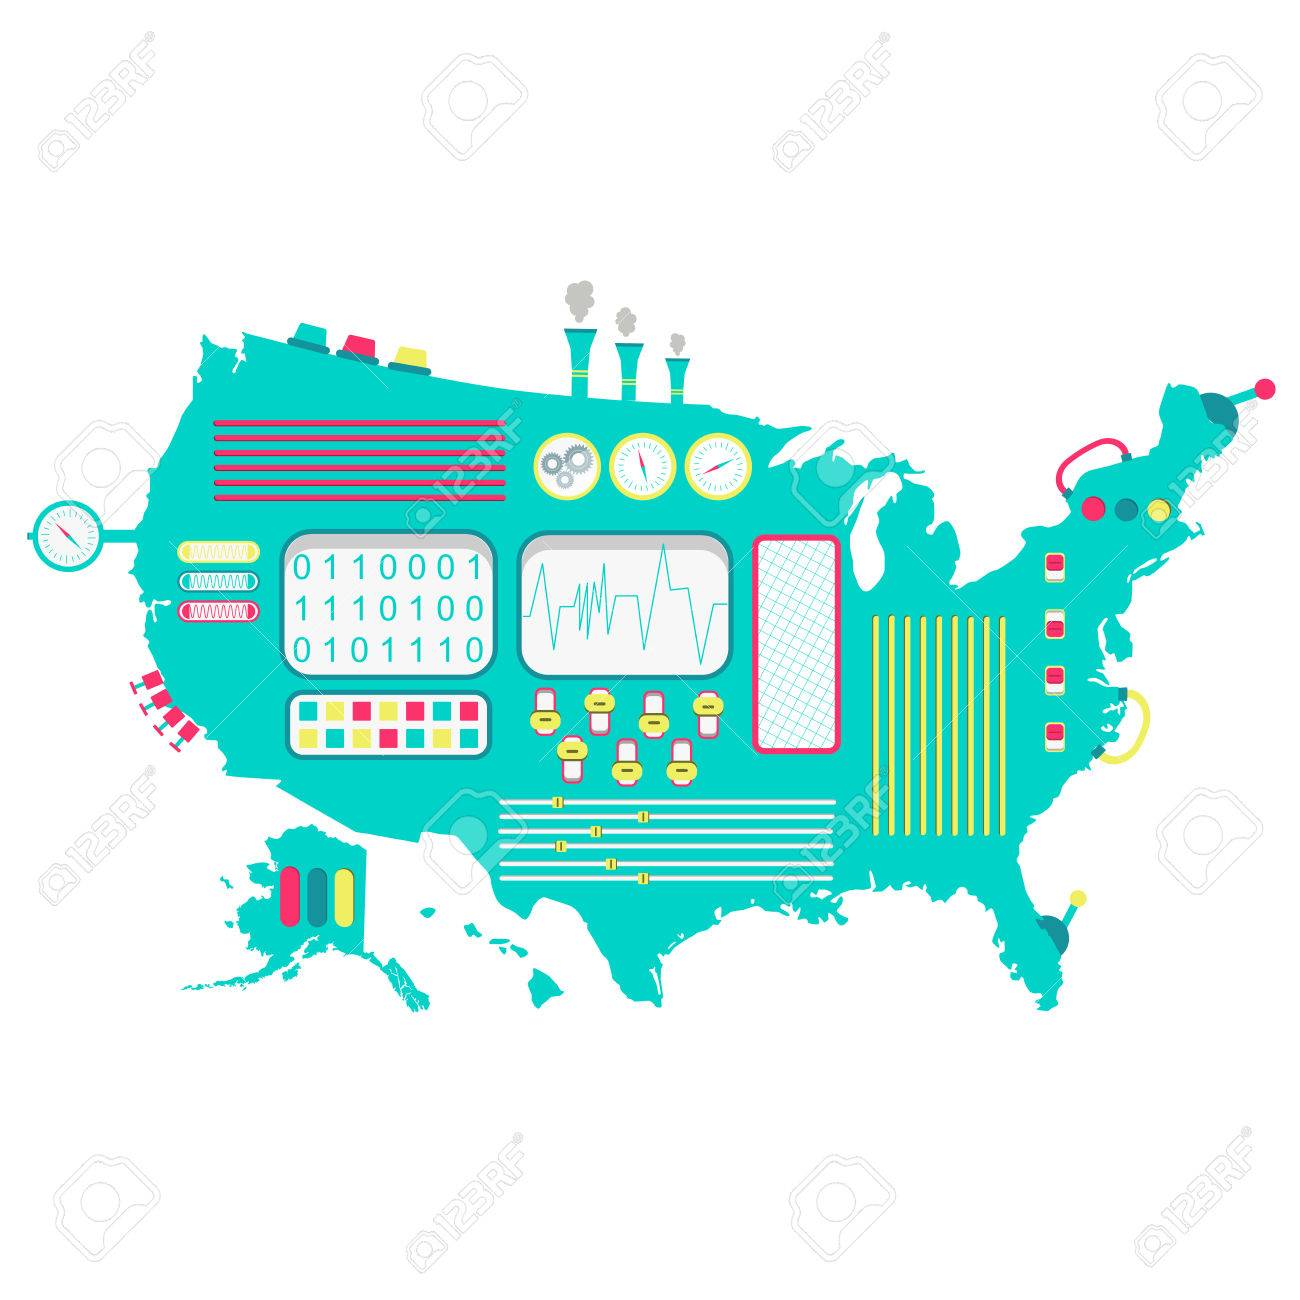 USA Machine. Map Of United States Like A Cute Machine With Buttons